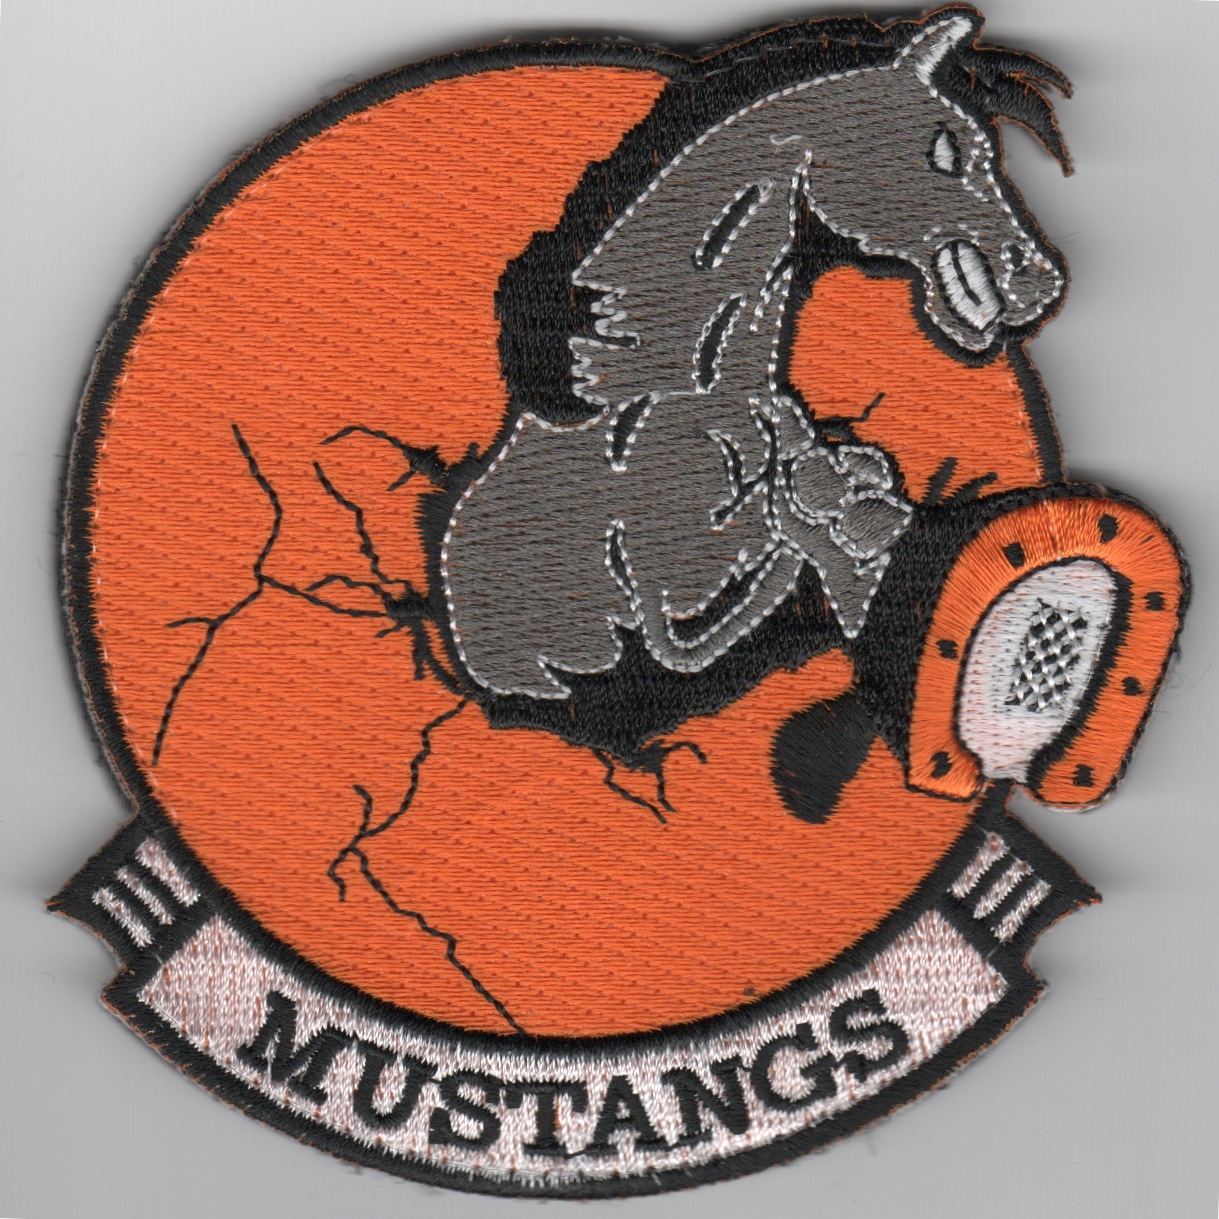 436th Training Squadron 'Mustangs' (Velcro)